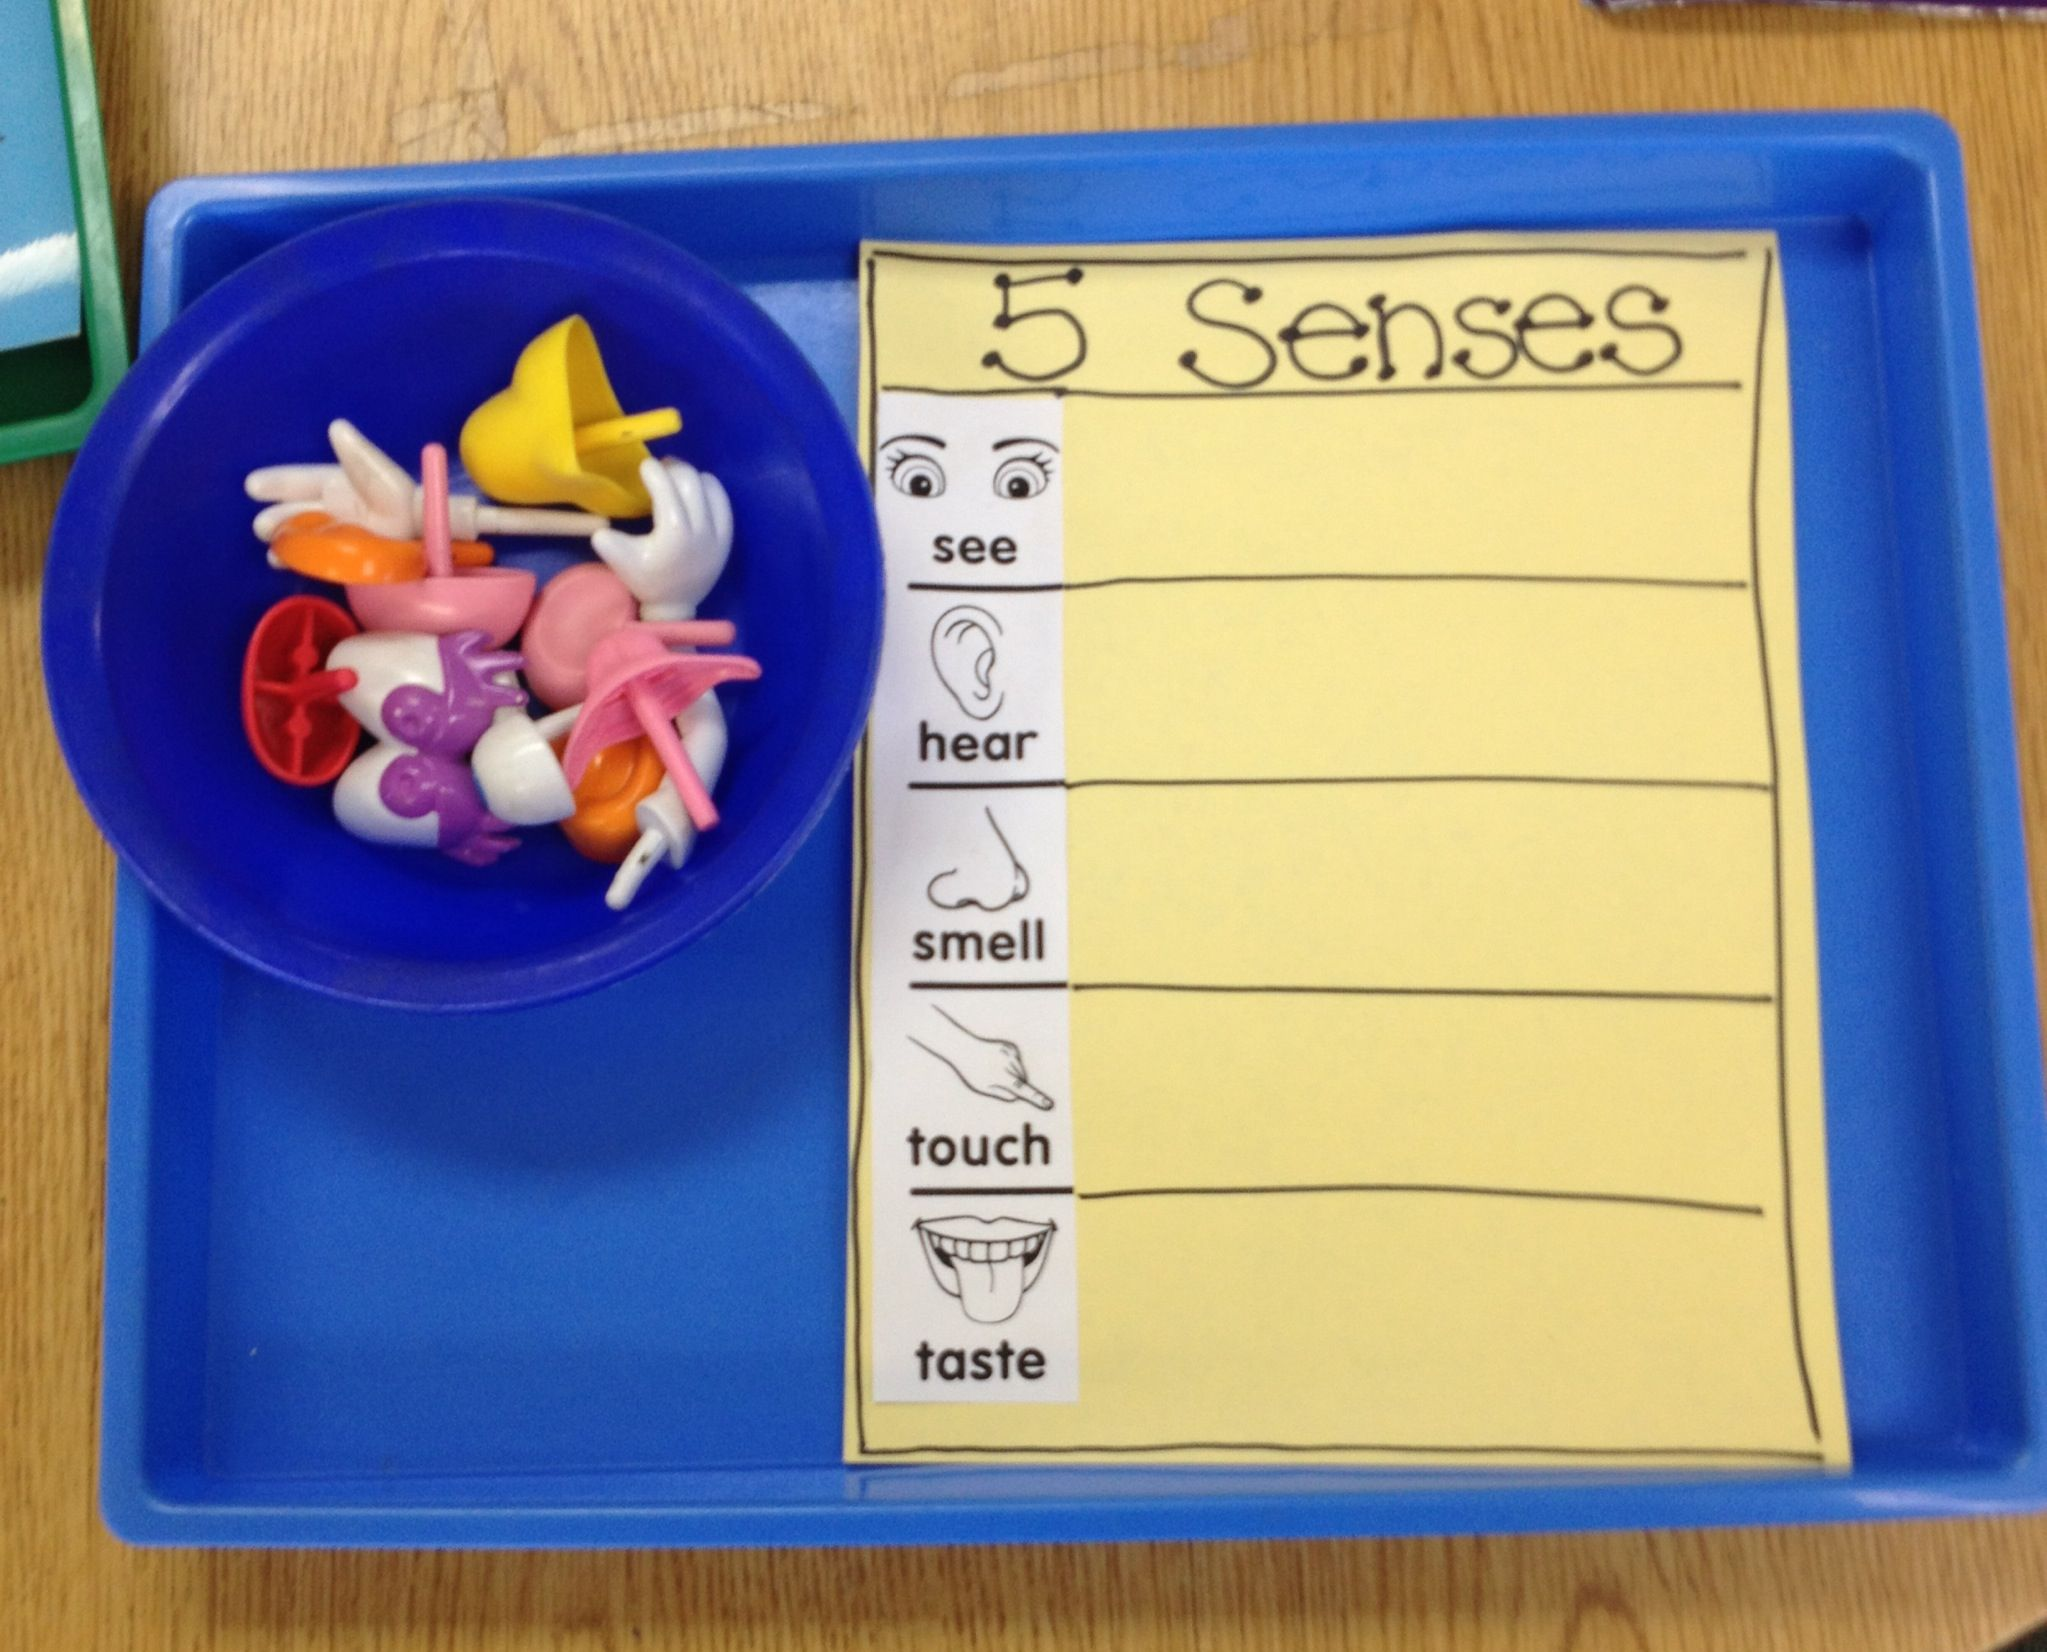 5 Senses Matching Game With Mr Potato Head Pieces